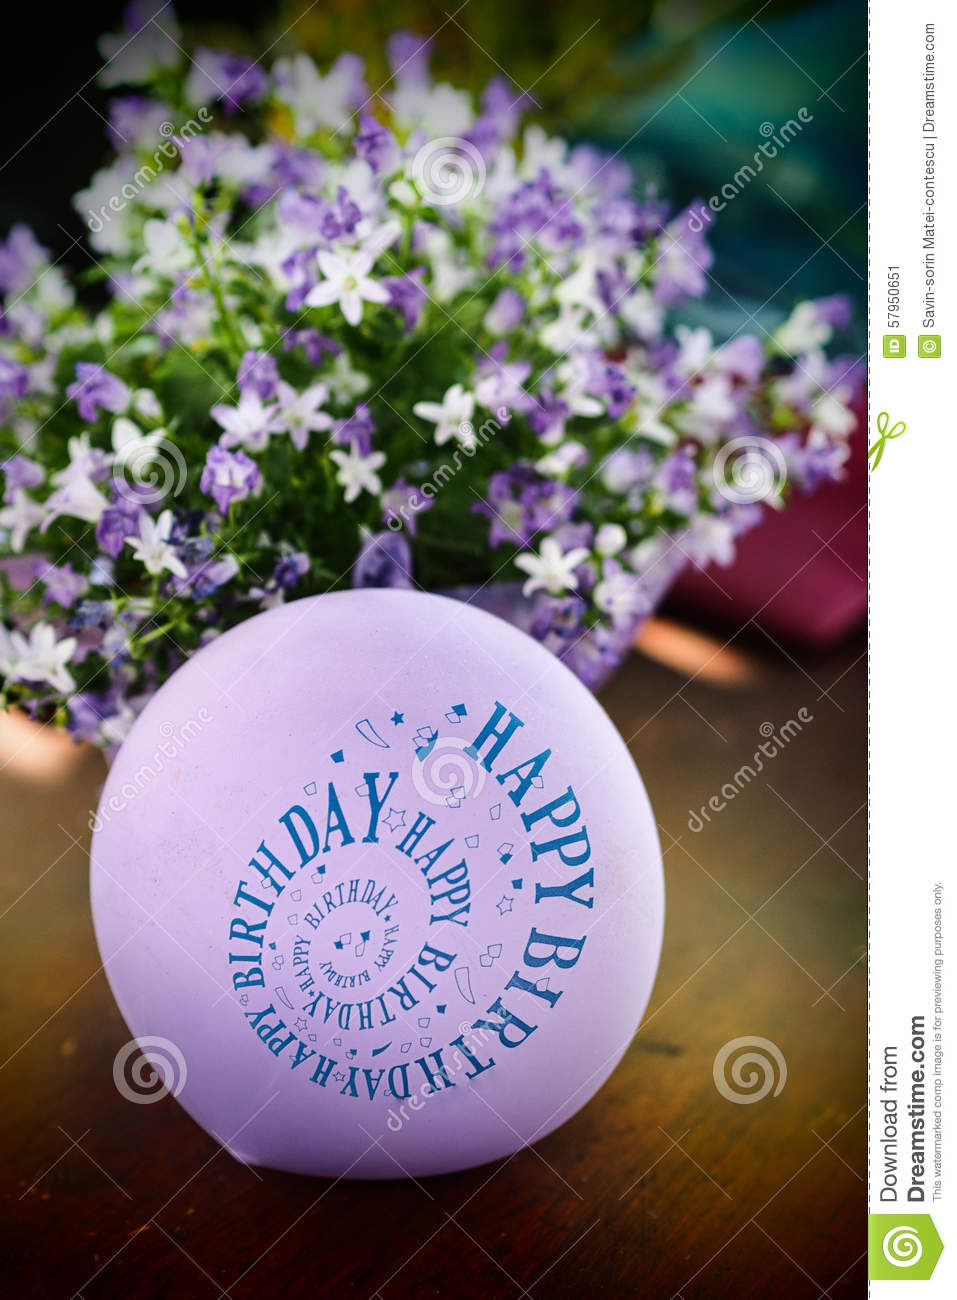 Happy Birthday Balloon Stock Image Image Of Anniversary 57950651